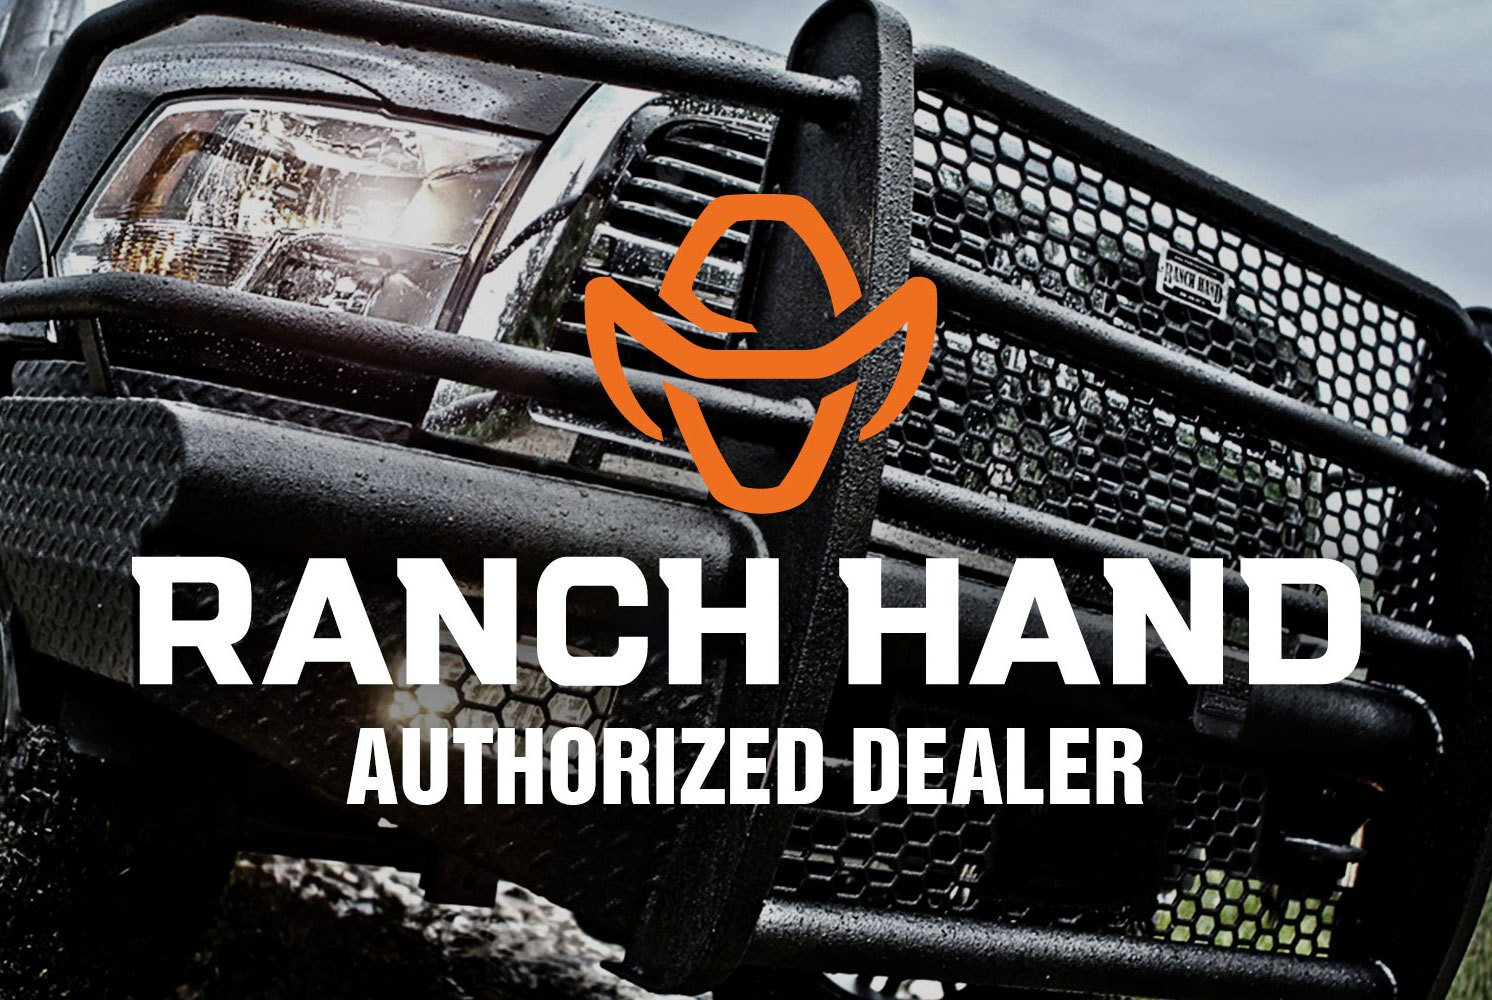 Ranch hand authorized dealer